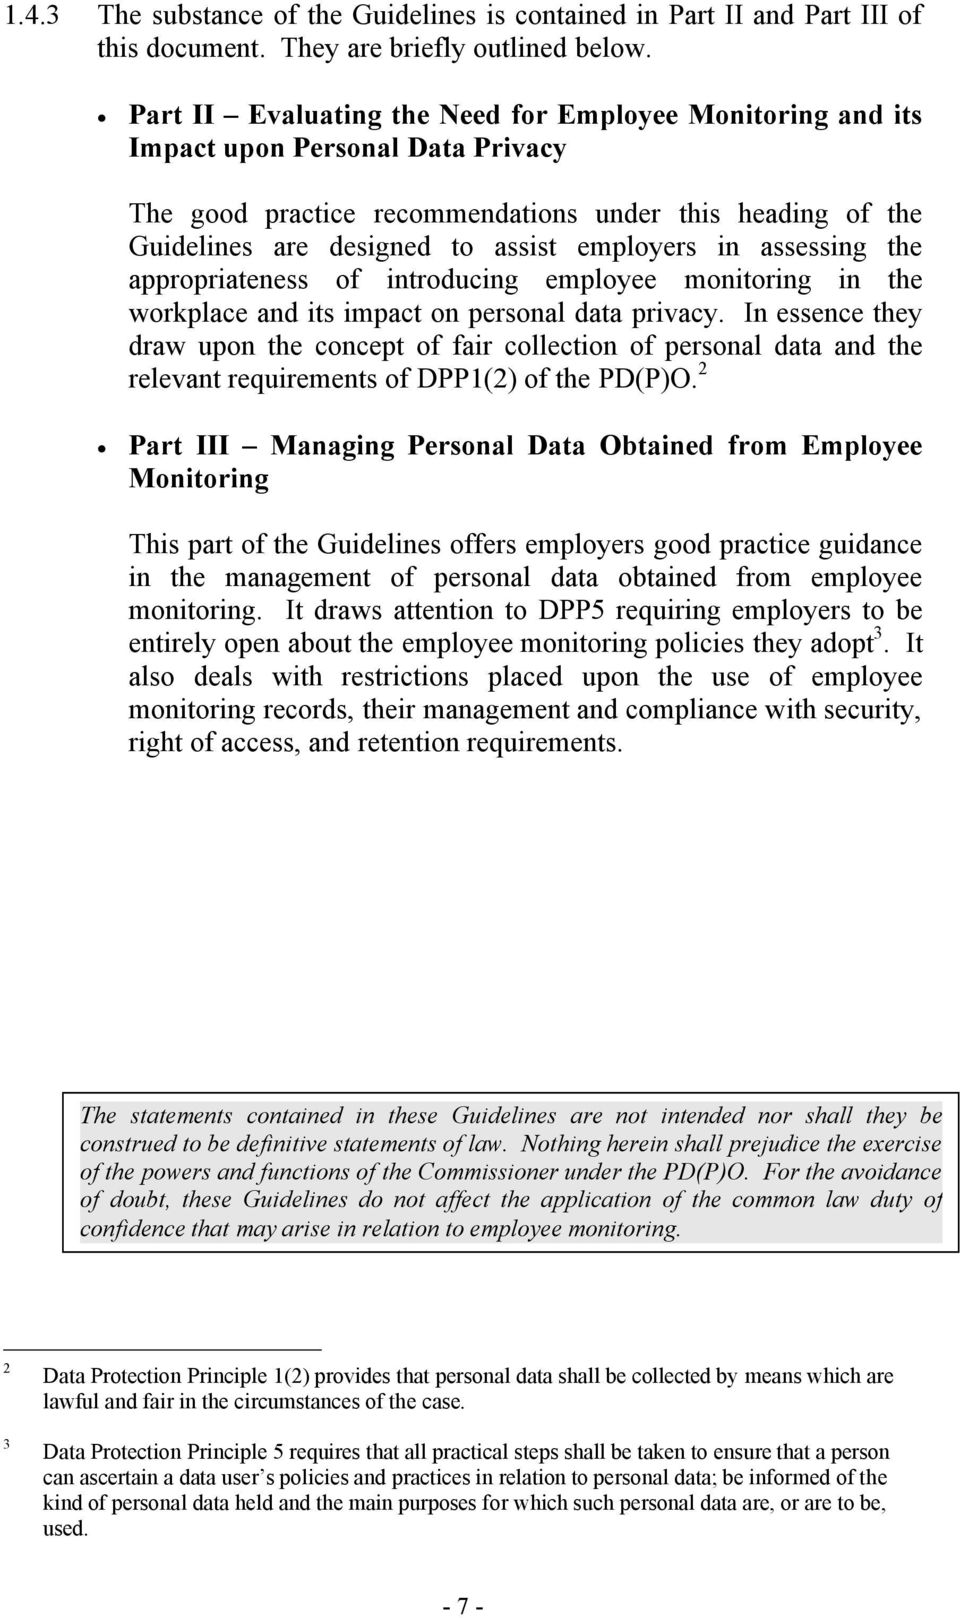 in assessing the appropriateness of introducing employee monitoring in the workplace and its impact on personal data privacy.